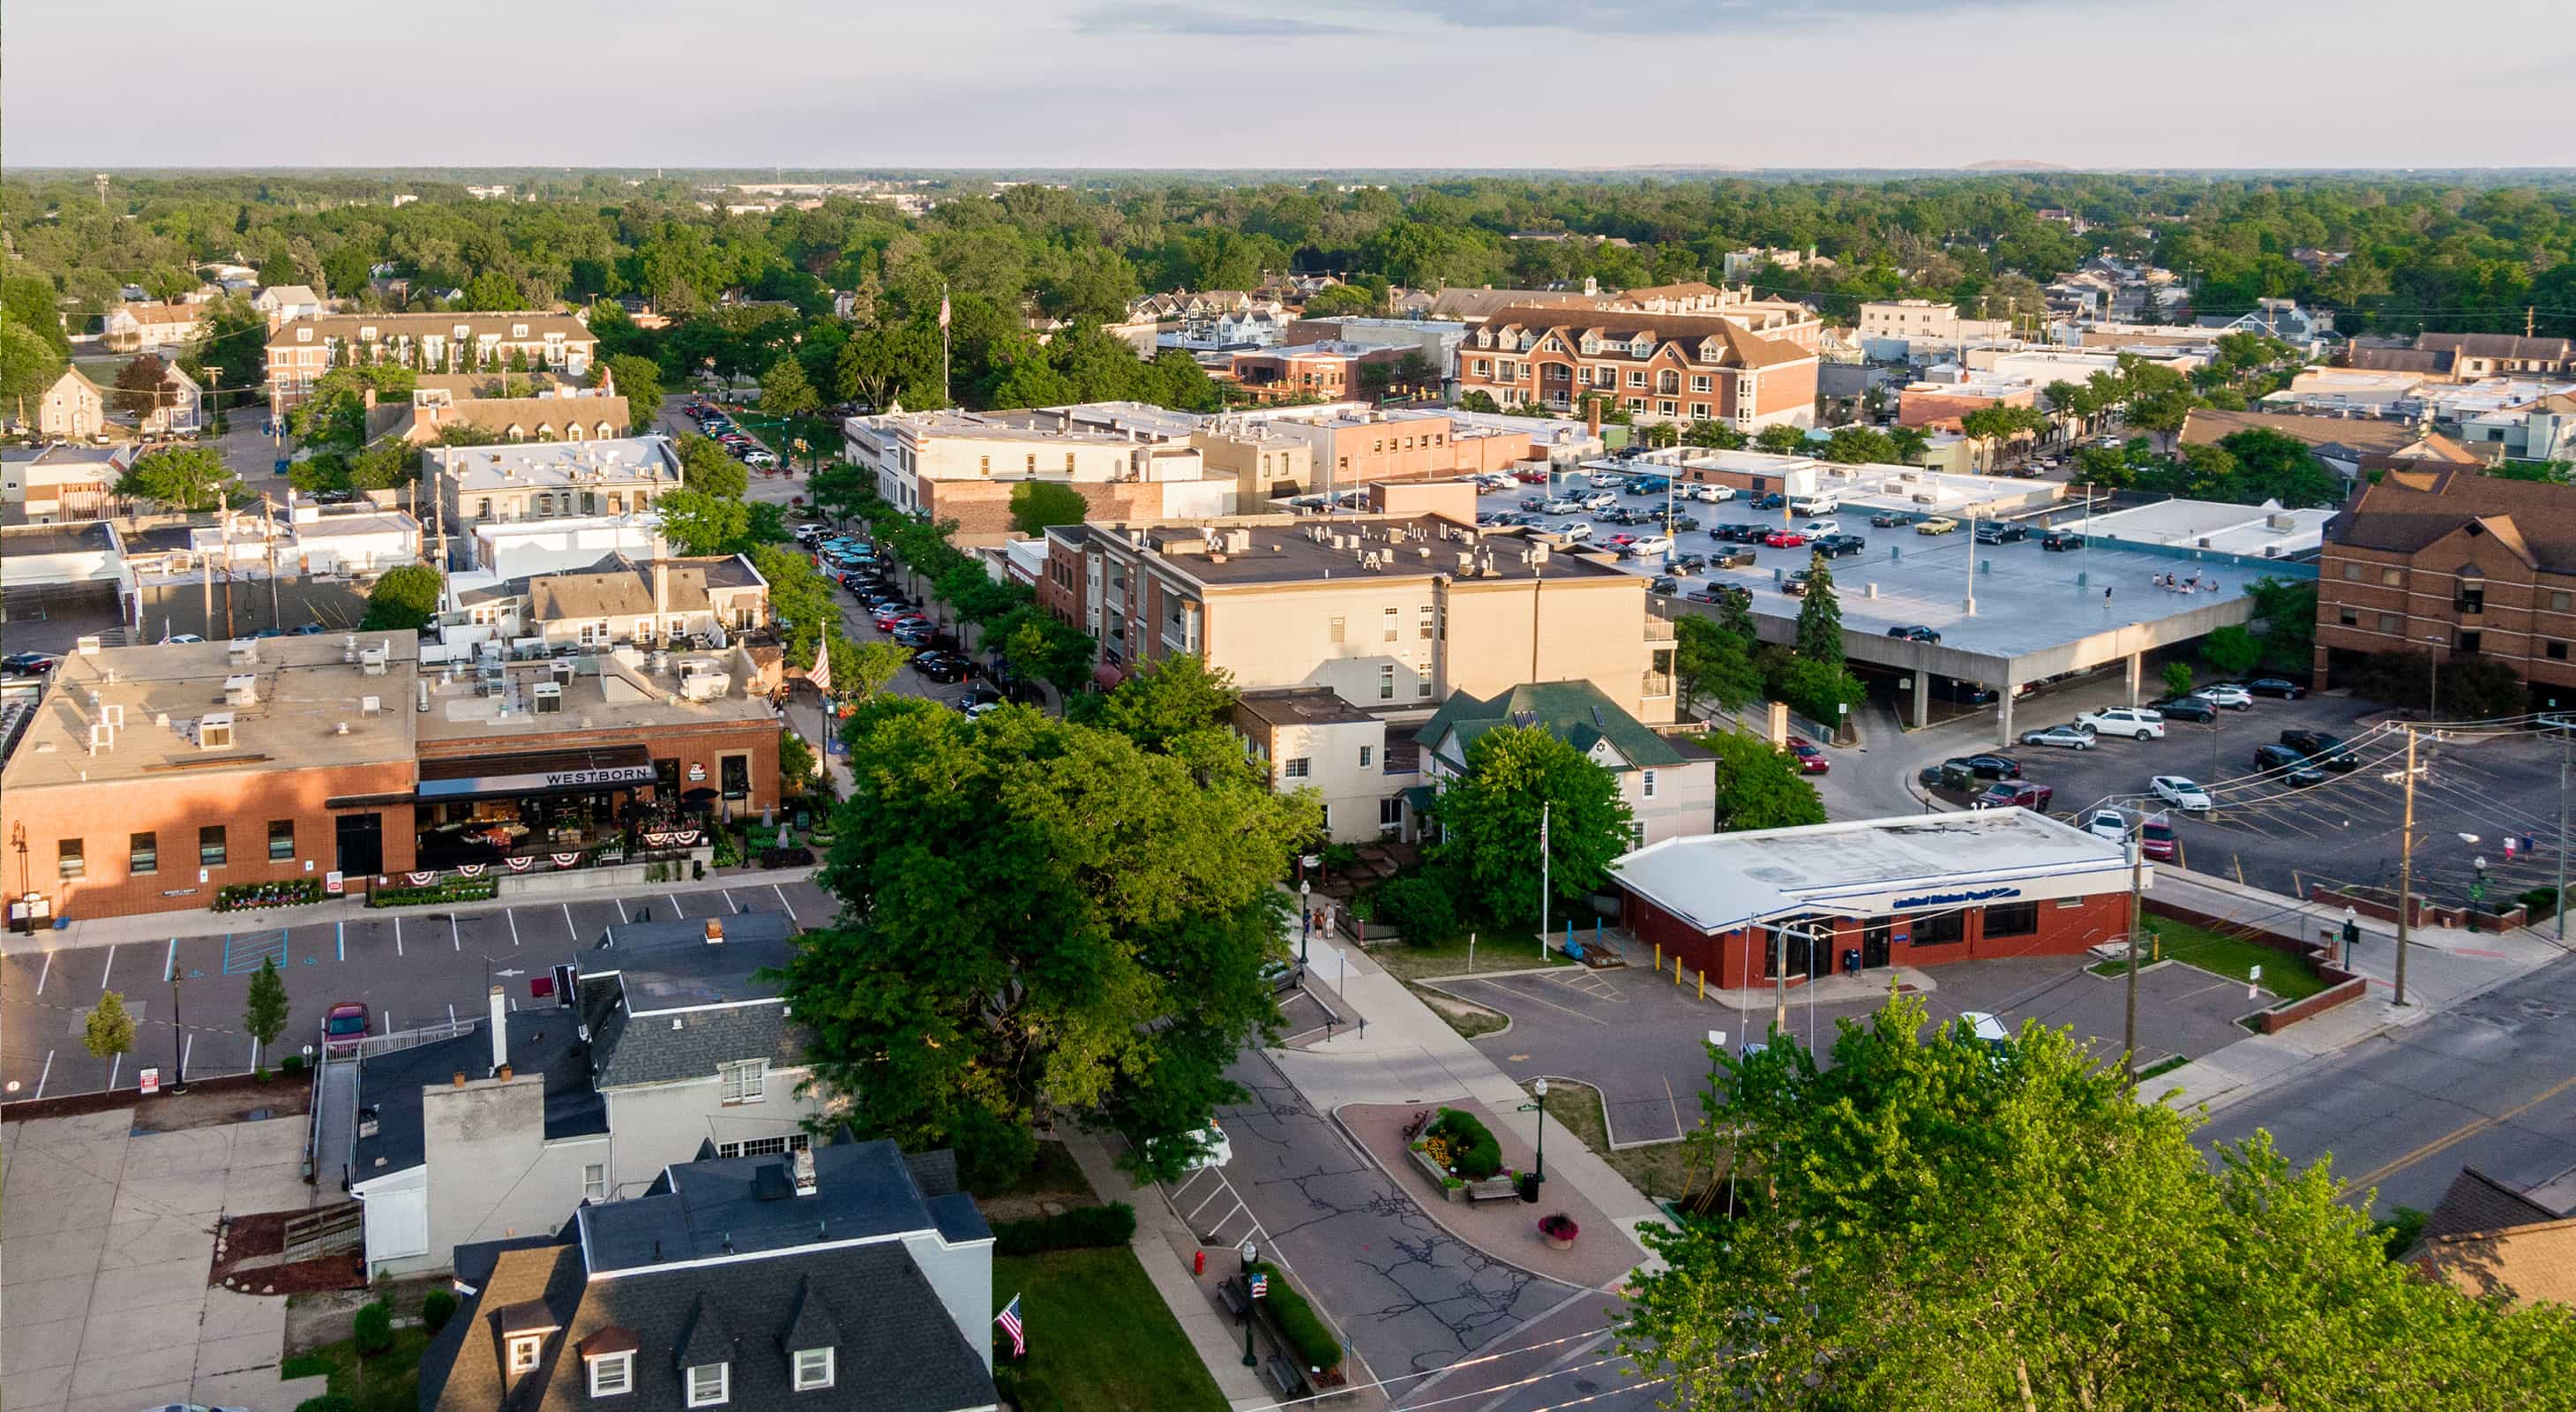 Downtown Plymouth, Michigan in daytime